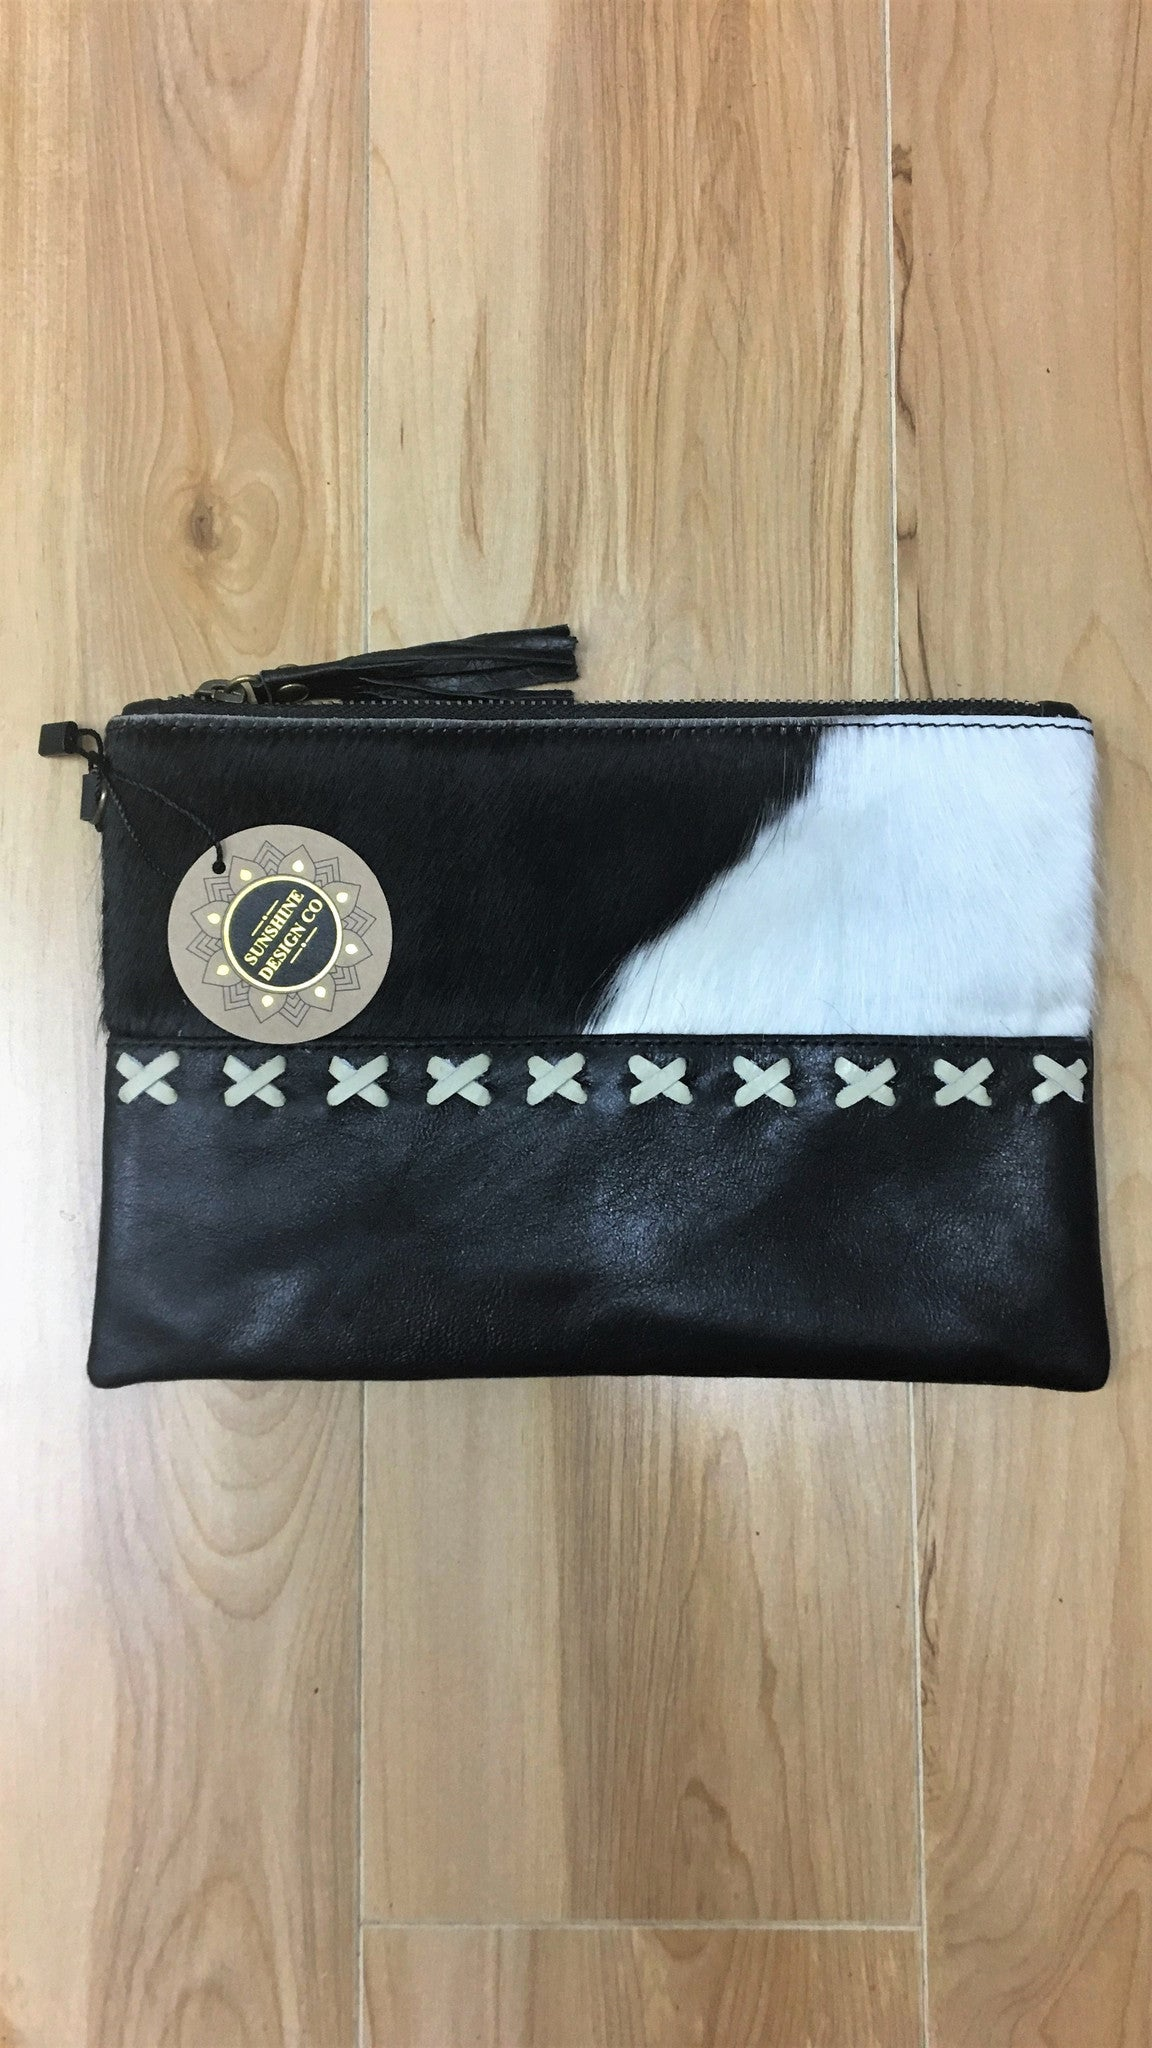 Lucy Arrow Coin Purse - Black Cowhide